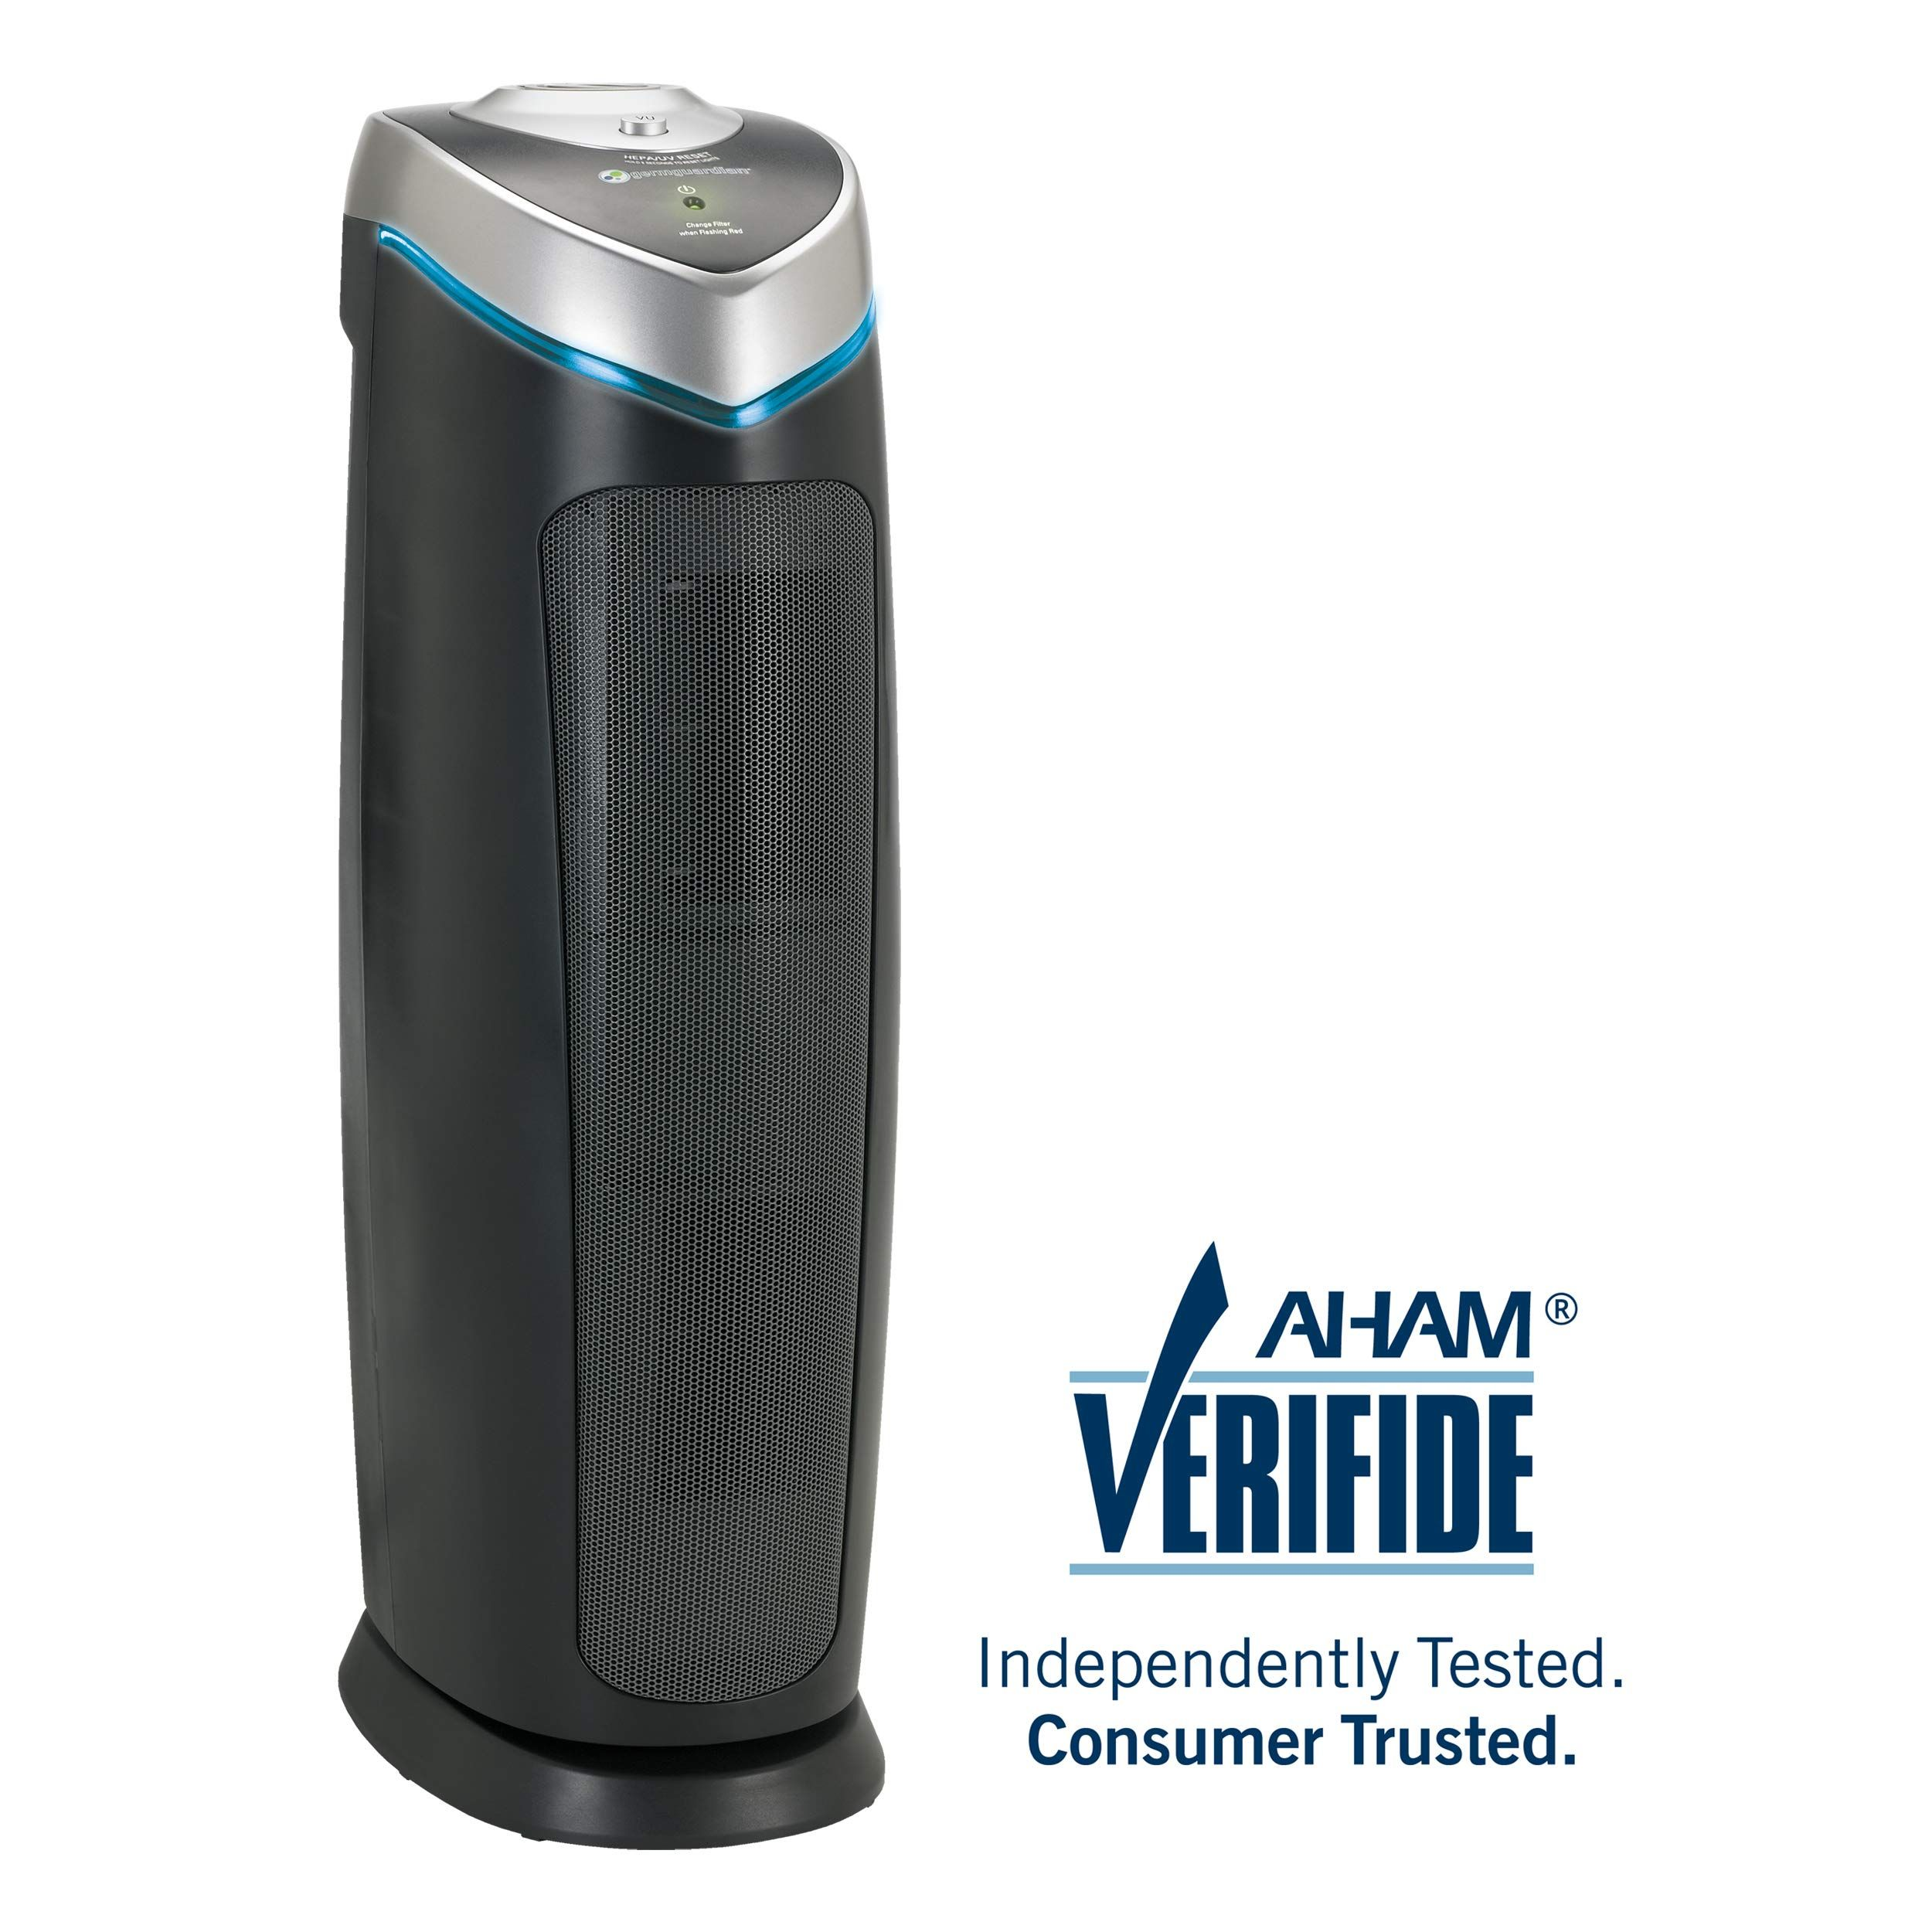 Germguardian Ac4825 22a 3in1 Full Room Air Purifier True Hepa Filter Uvc Sanitizer Home Air Cl Filter Air Purifier Hepa Air Purifier Hepa Filter Air Purifier